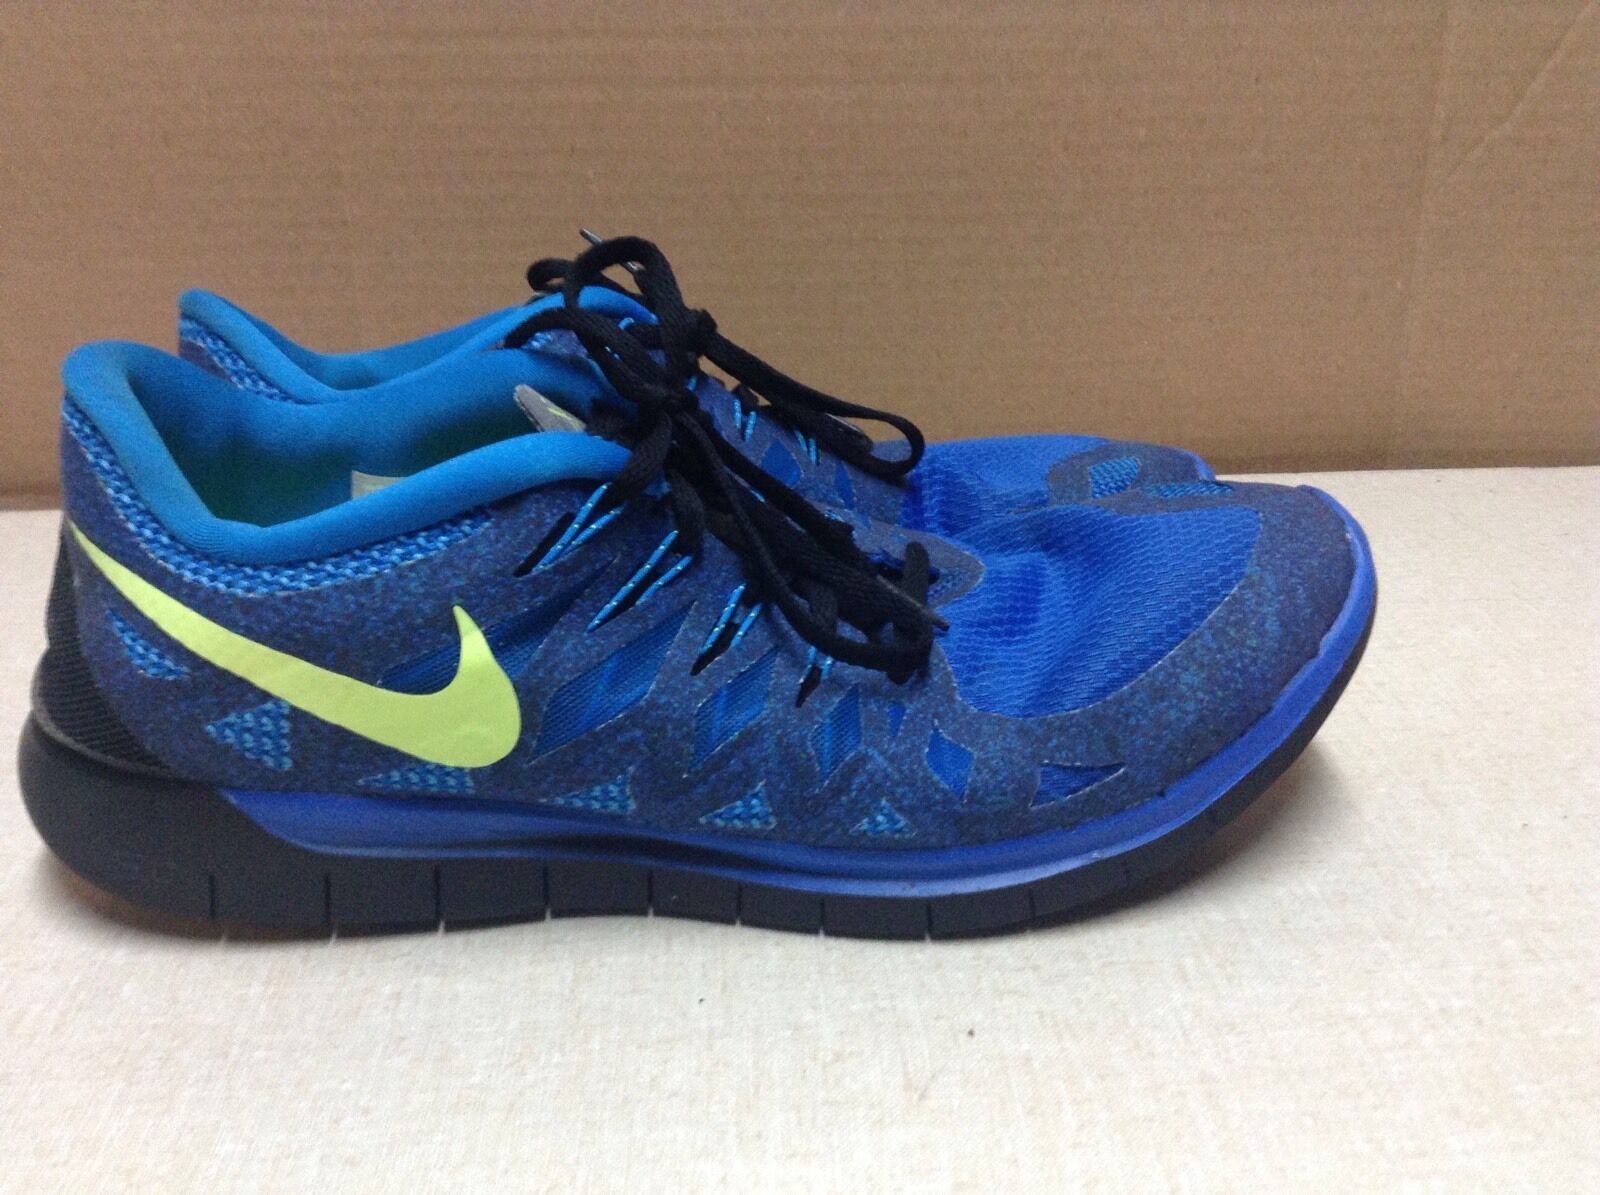 Nike Free 5.0 shoes Mens Size 14